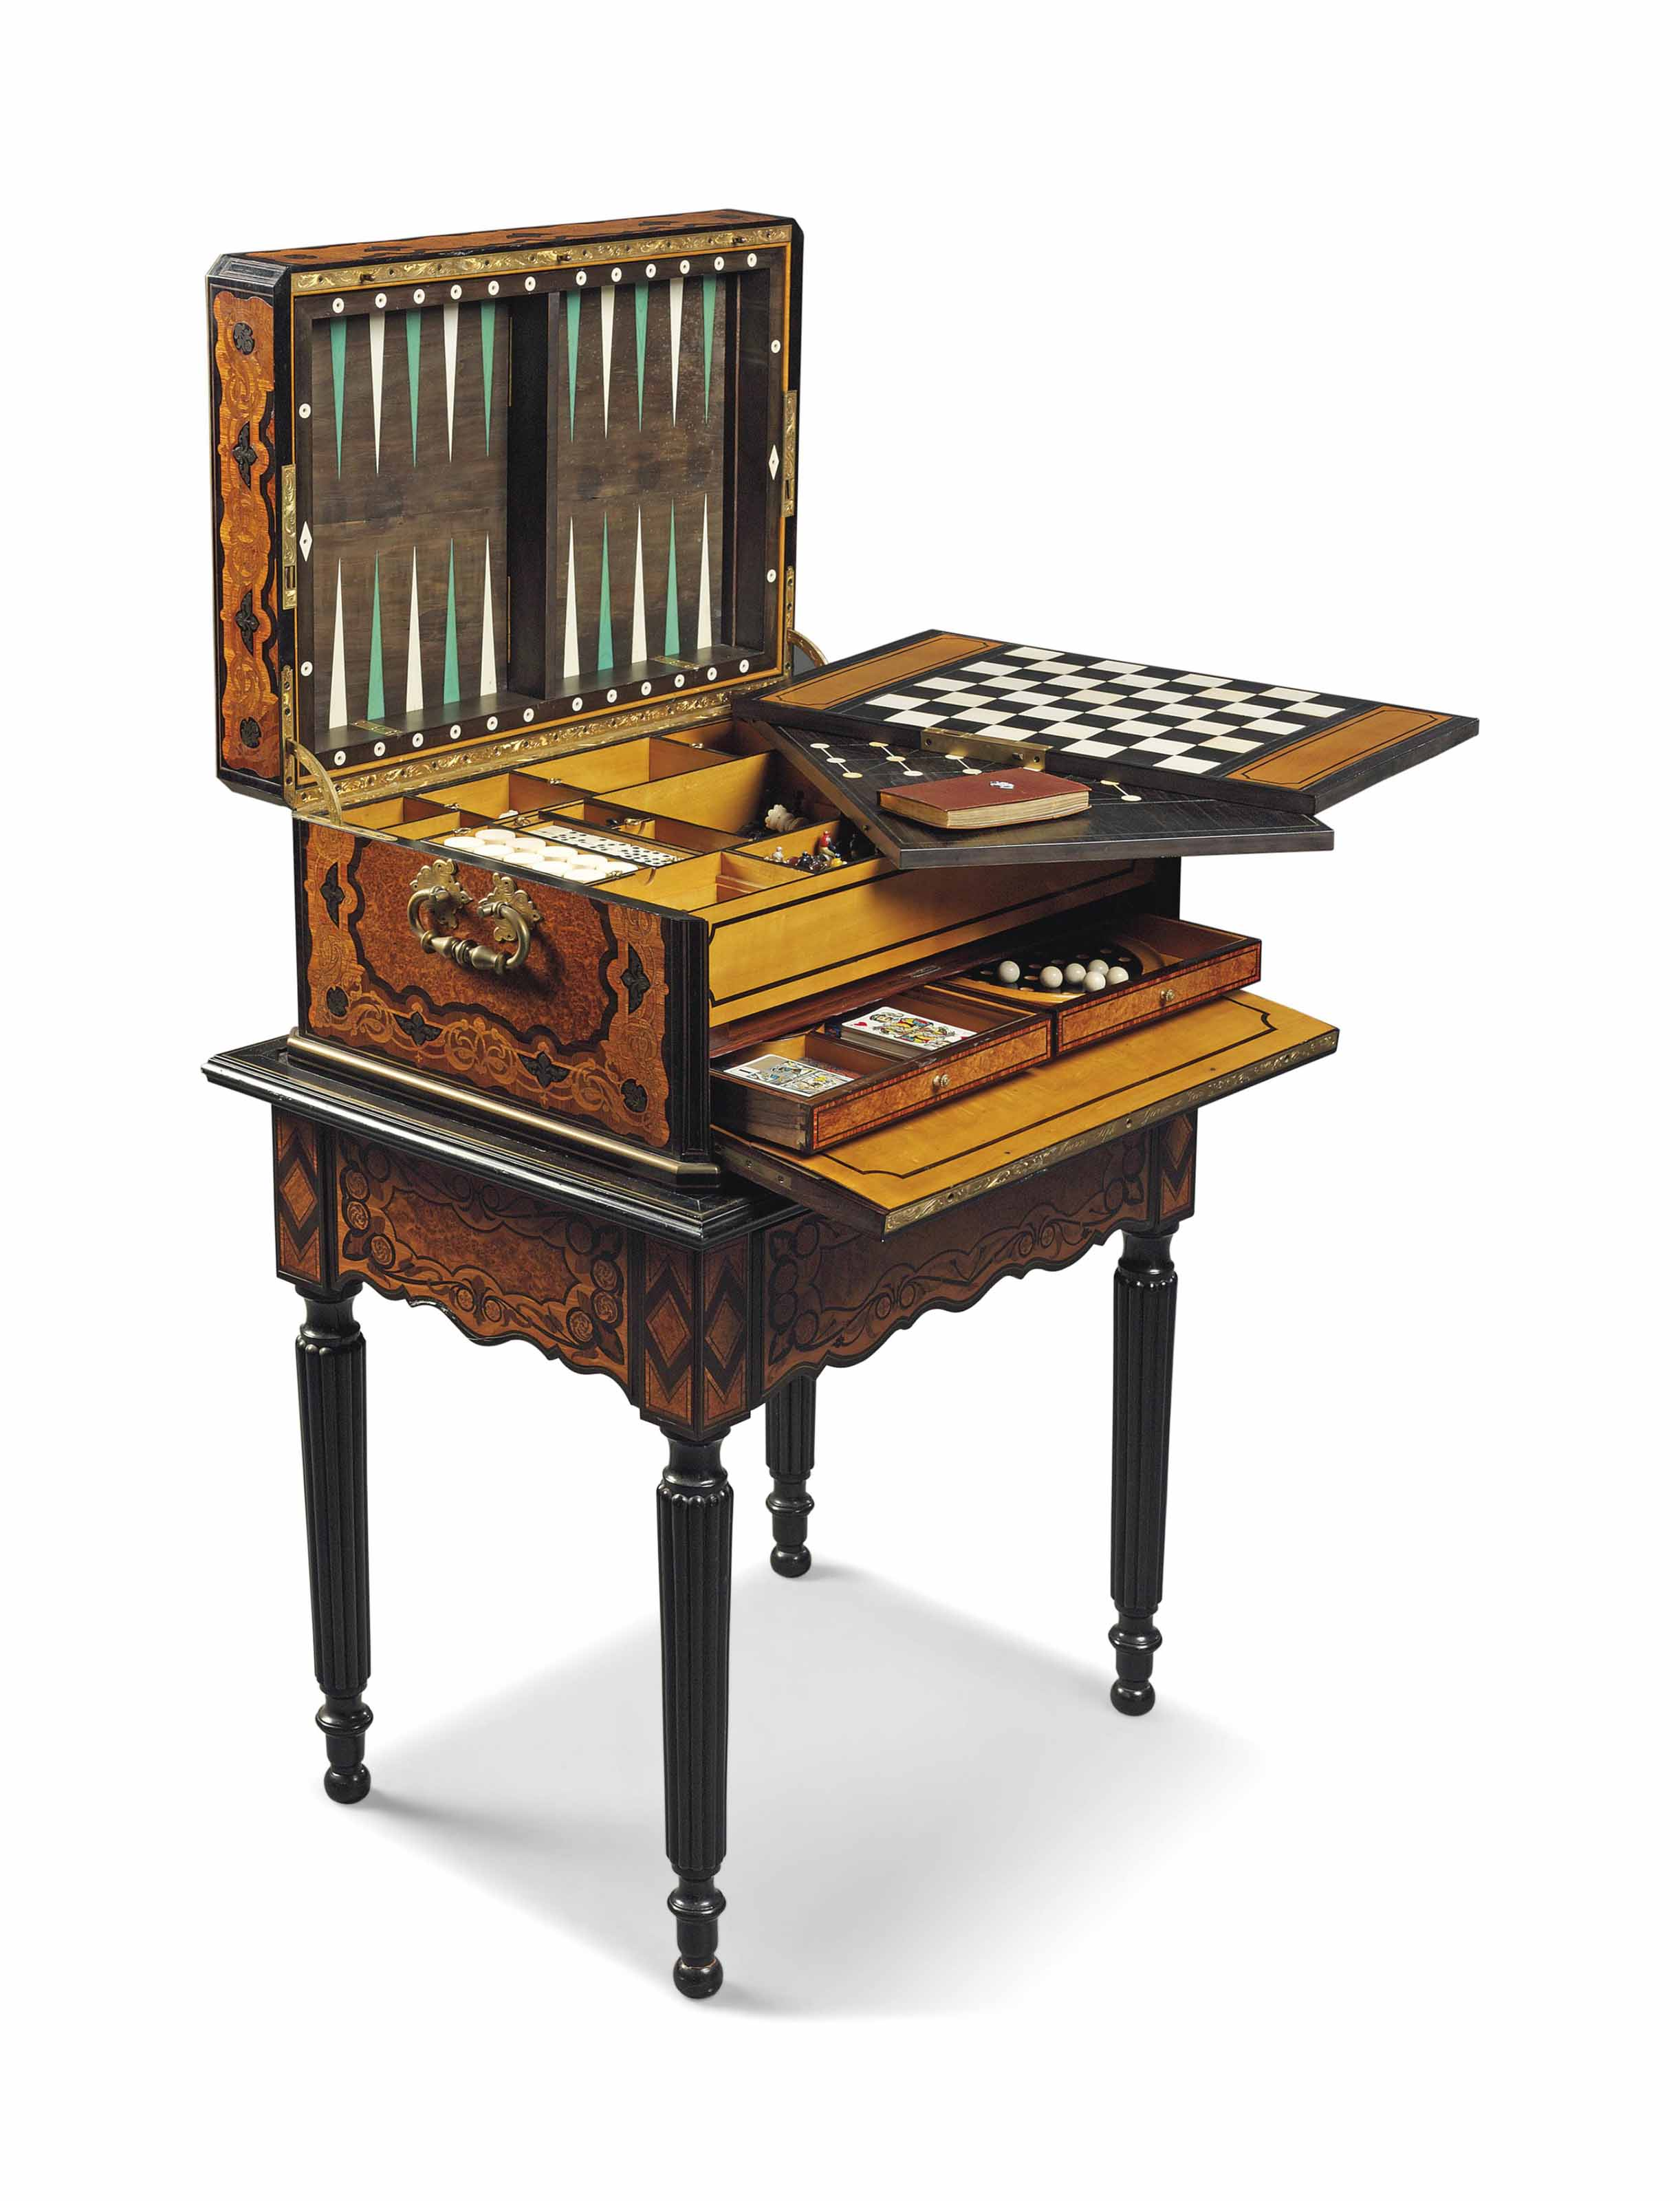 A NAPOLEON III ORMOLU-MOUNTED CUT-BRASS-INLAID EBONY, BURR, TULIPWOOD AND SYCAMORE GAMES CASKET, ON STAND